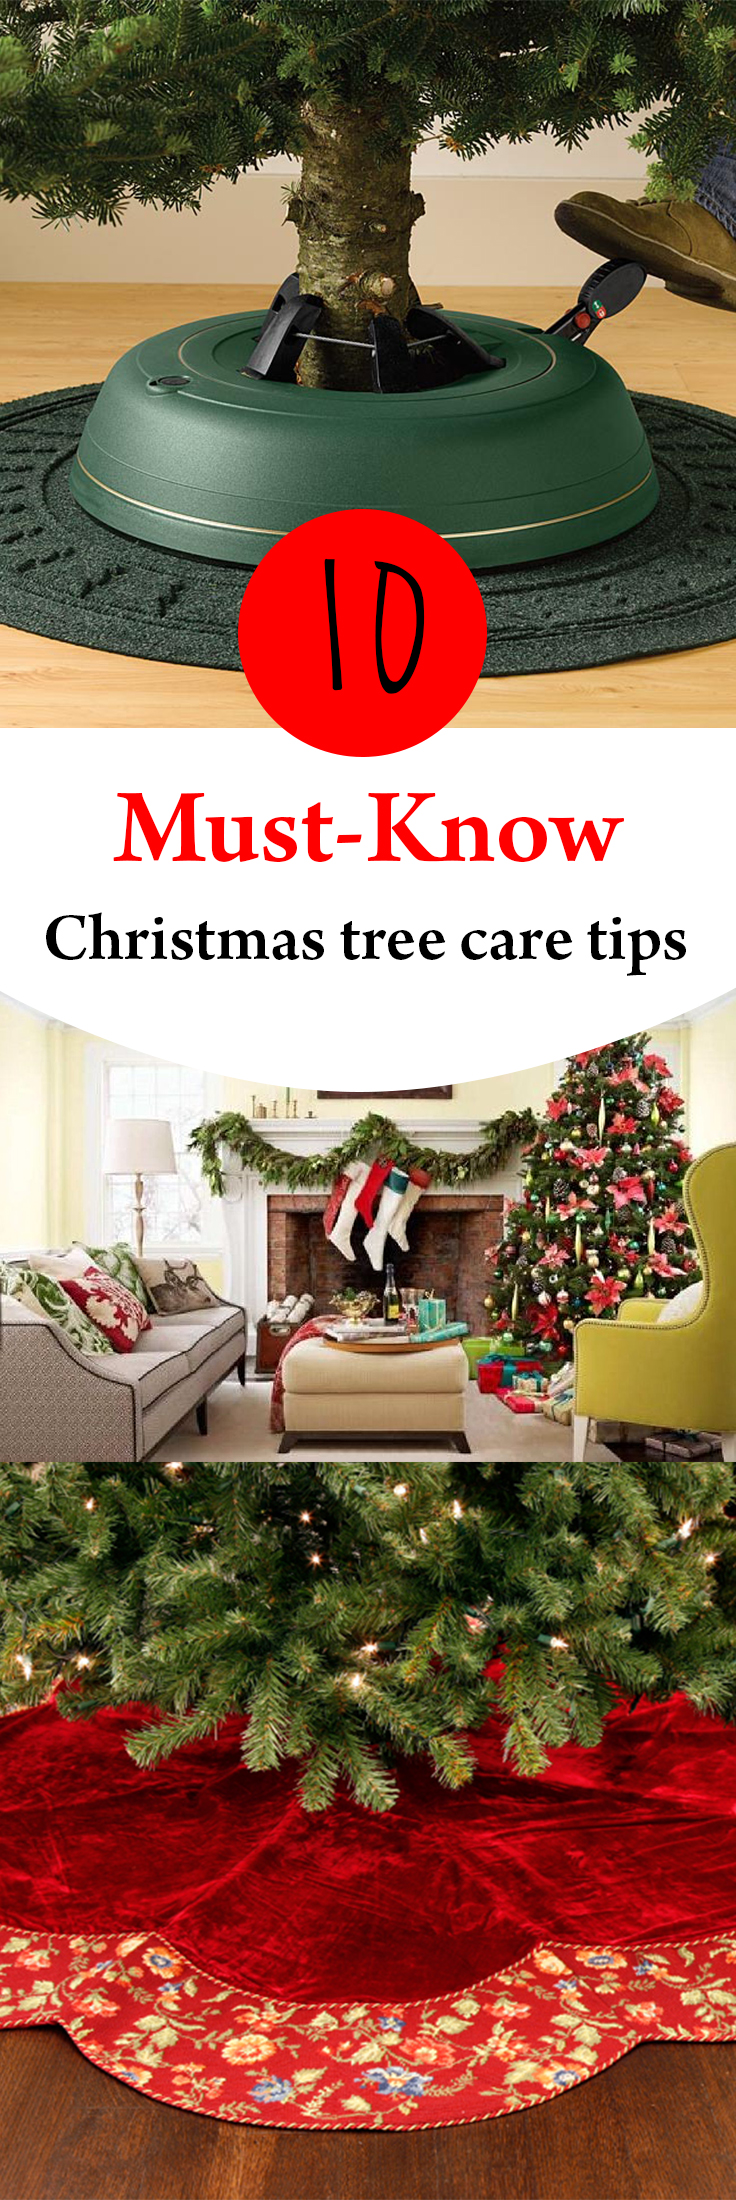 10-must-know-christmas-tree-care-tips